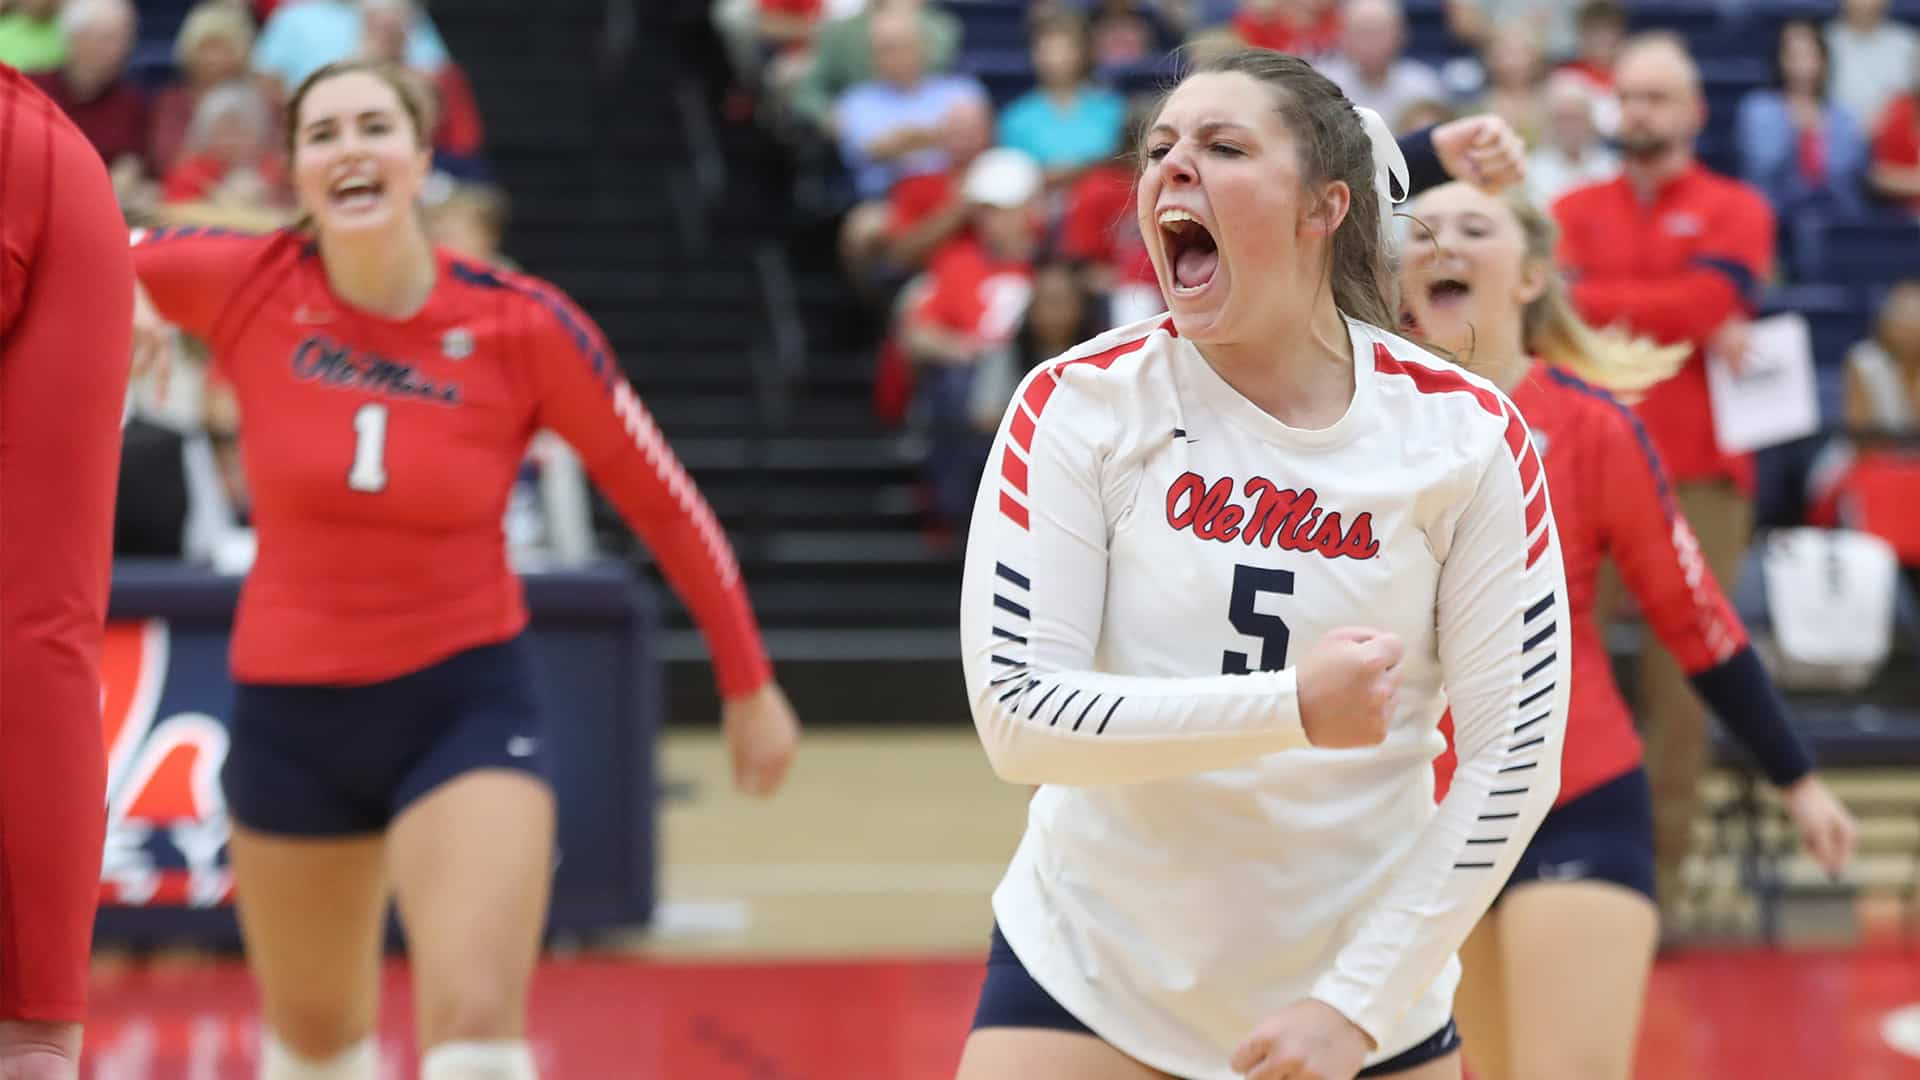 The Season: Ole Miss Volleyball - The Rebs Are Runnin' (2019)